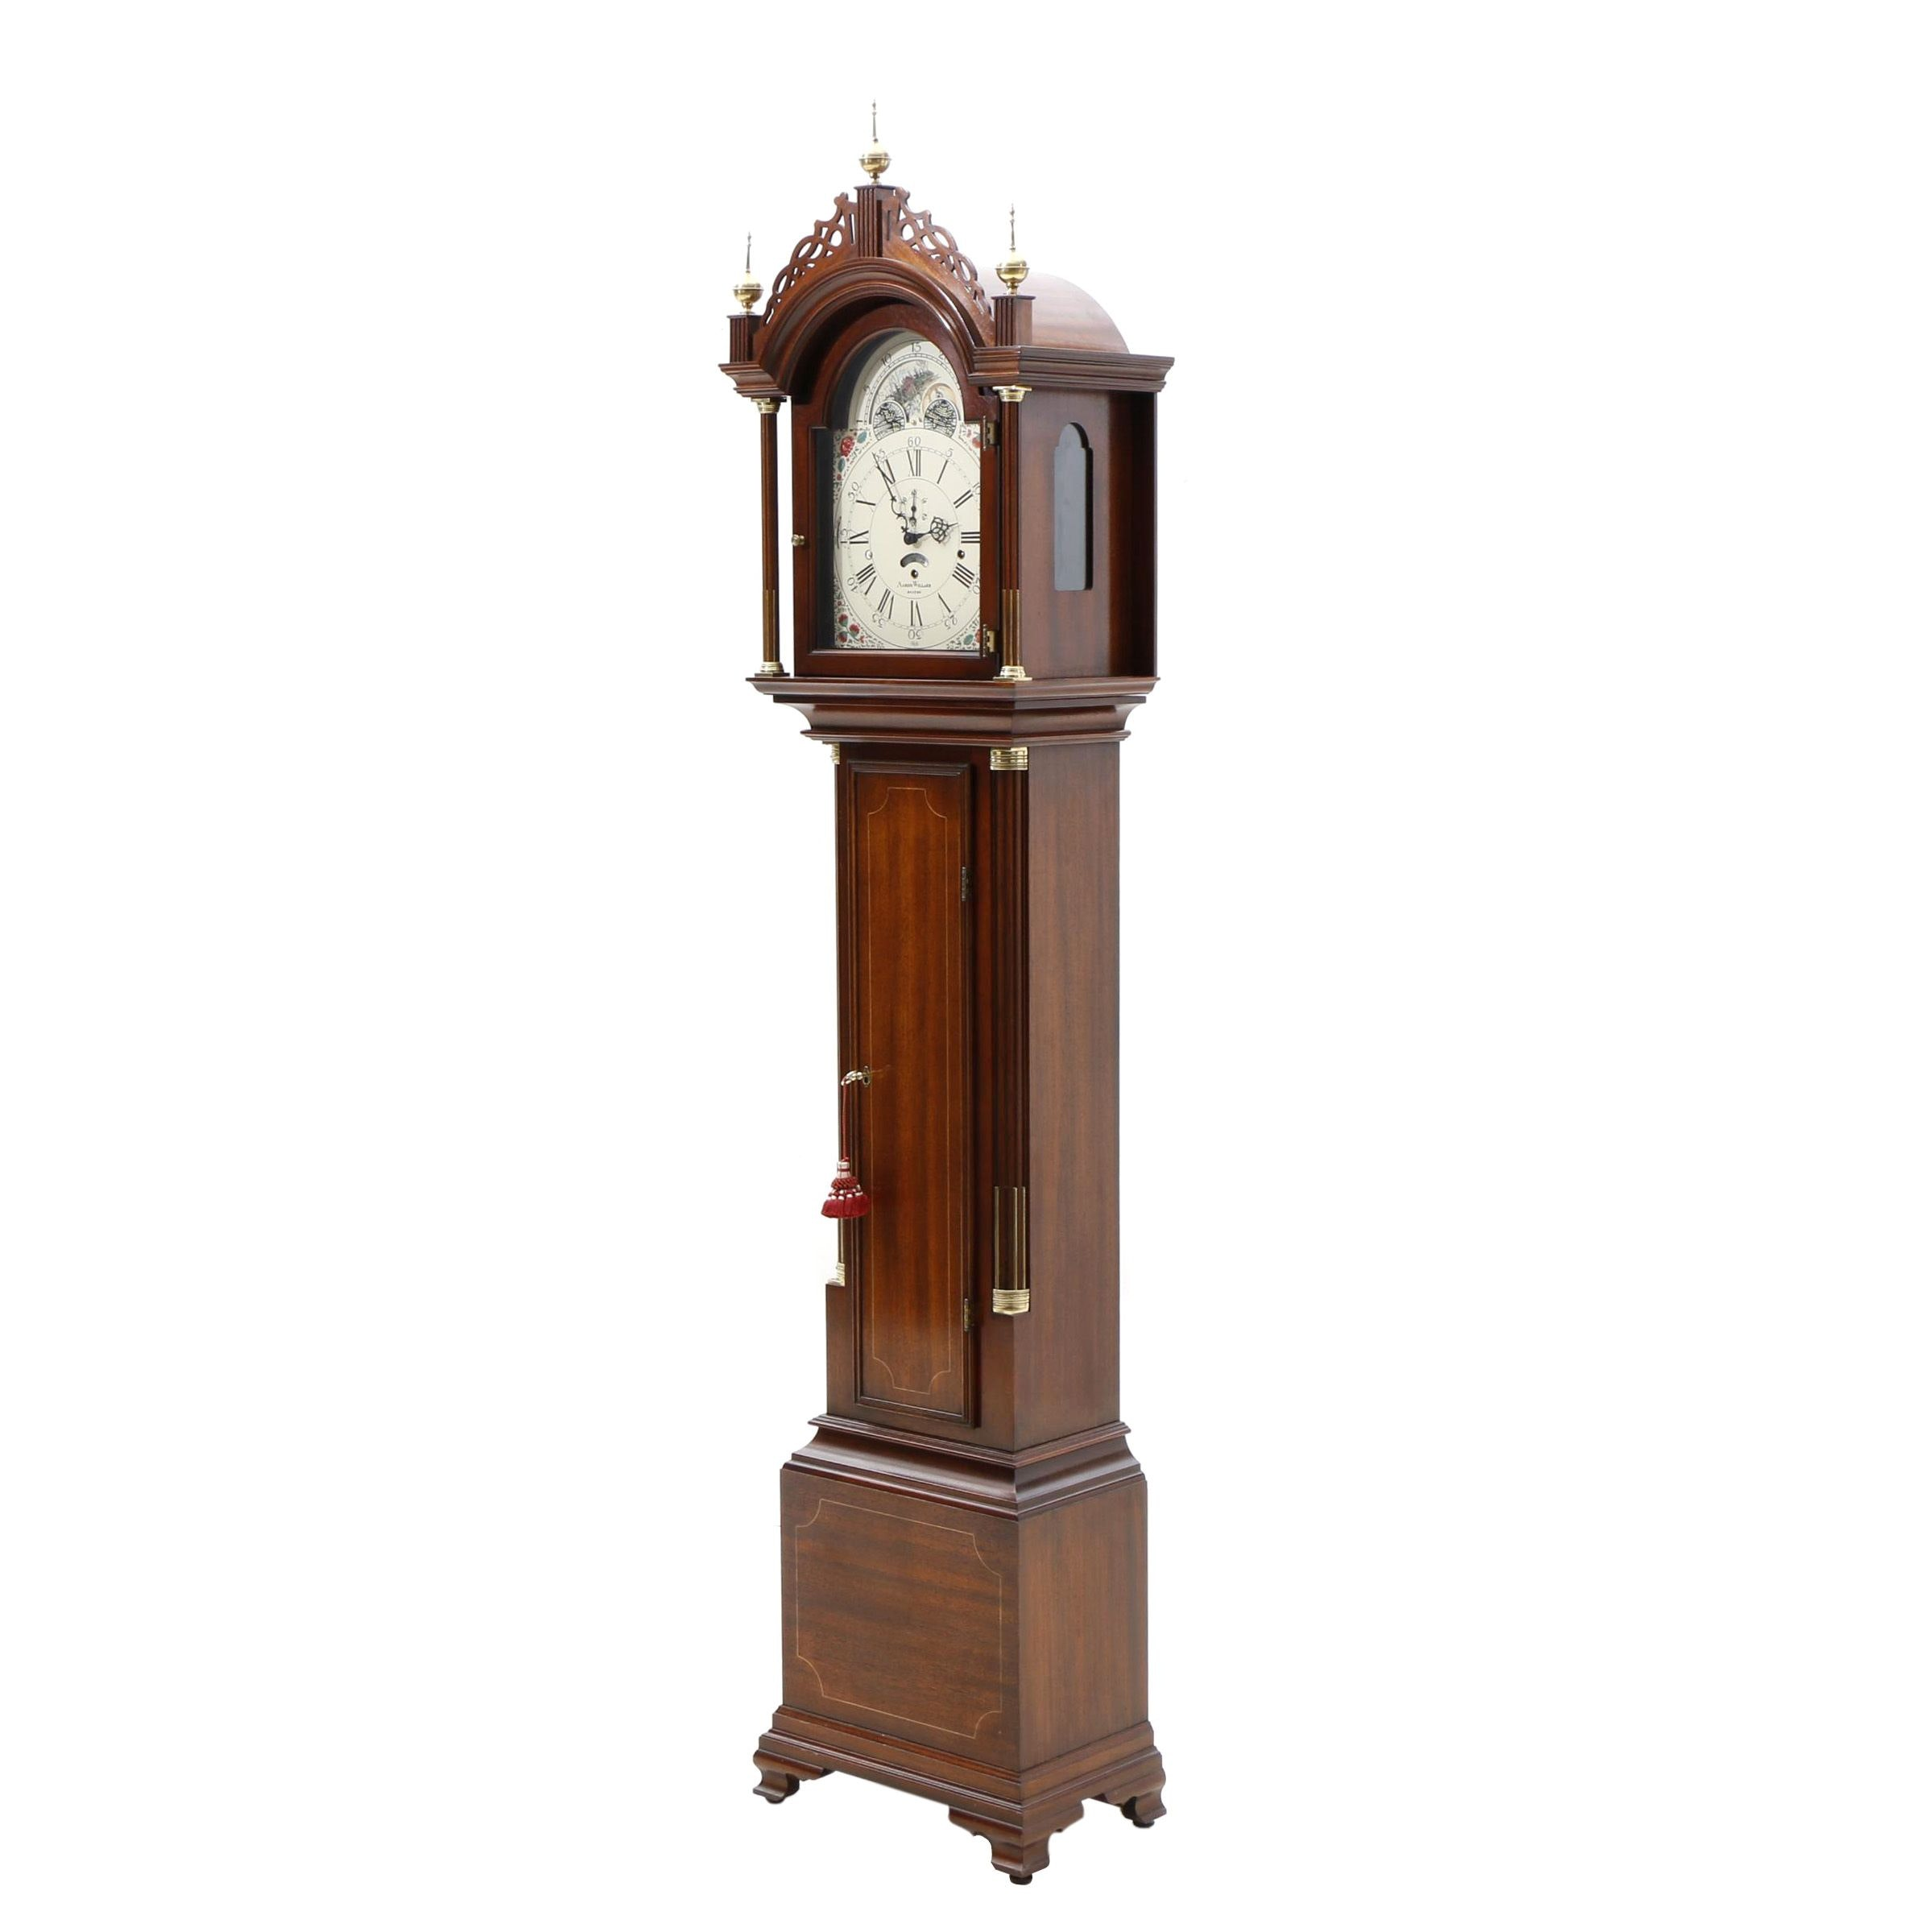 Vintage Aaron Willard Grandfather Clock with Sligh Movement